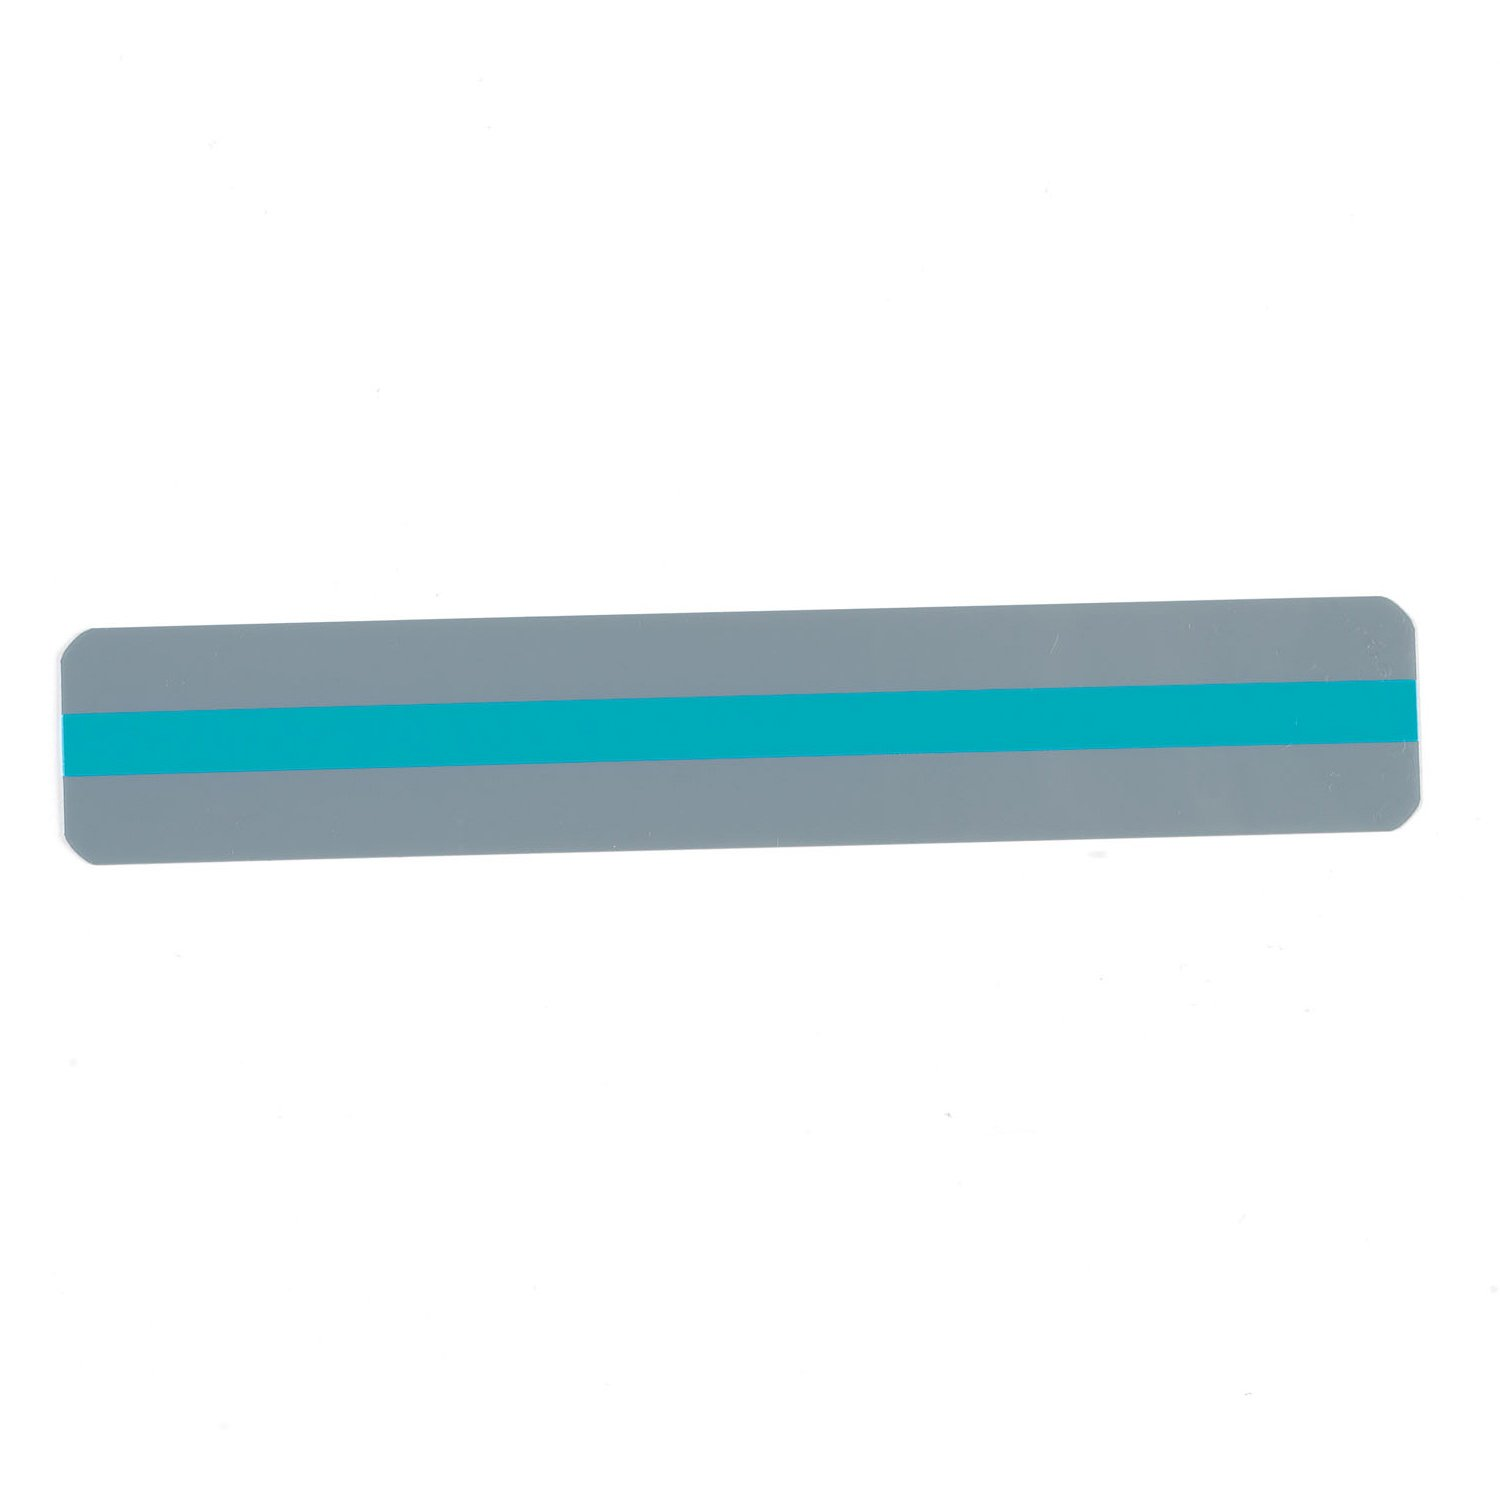 Ashley Productions Sentence Strip Reading Guide, 1.25'' x 7.25'', Blue, Pack of 24 by Ashley Productions